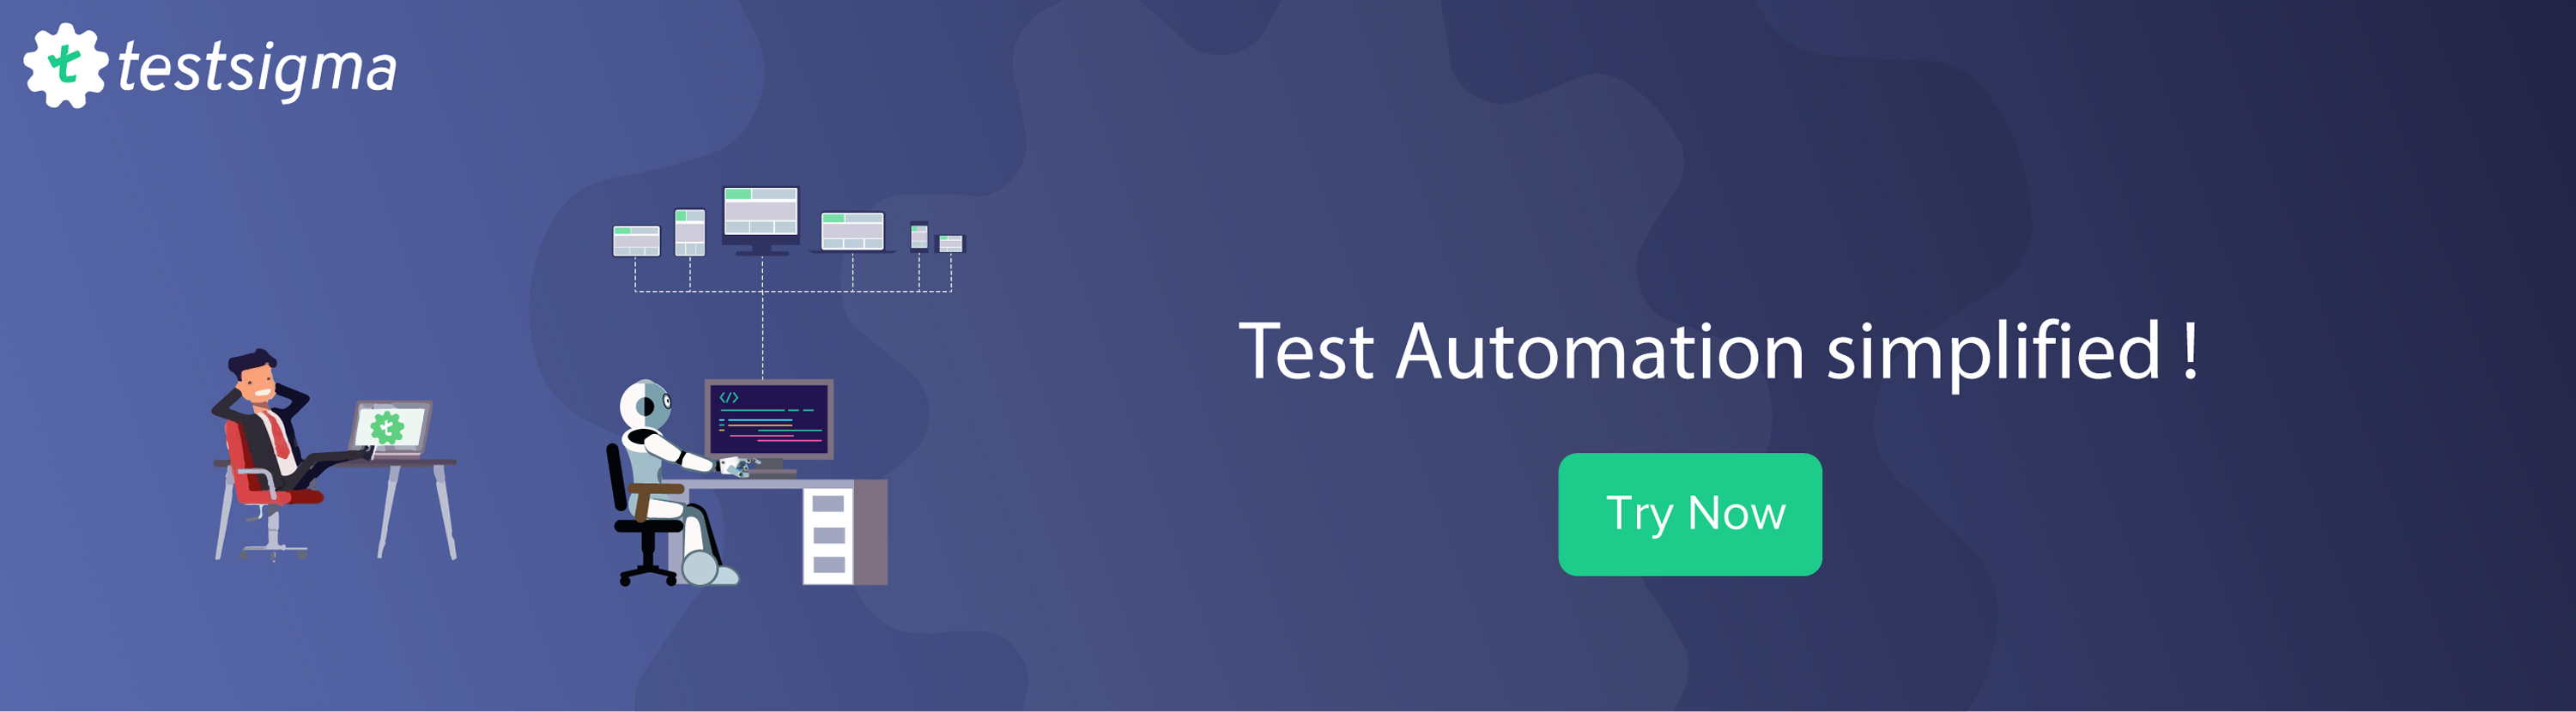 Test automation simplified with Testsigma,Test automation without coding, TryTestsigma